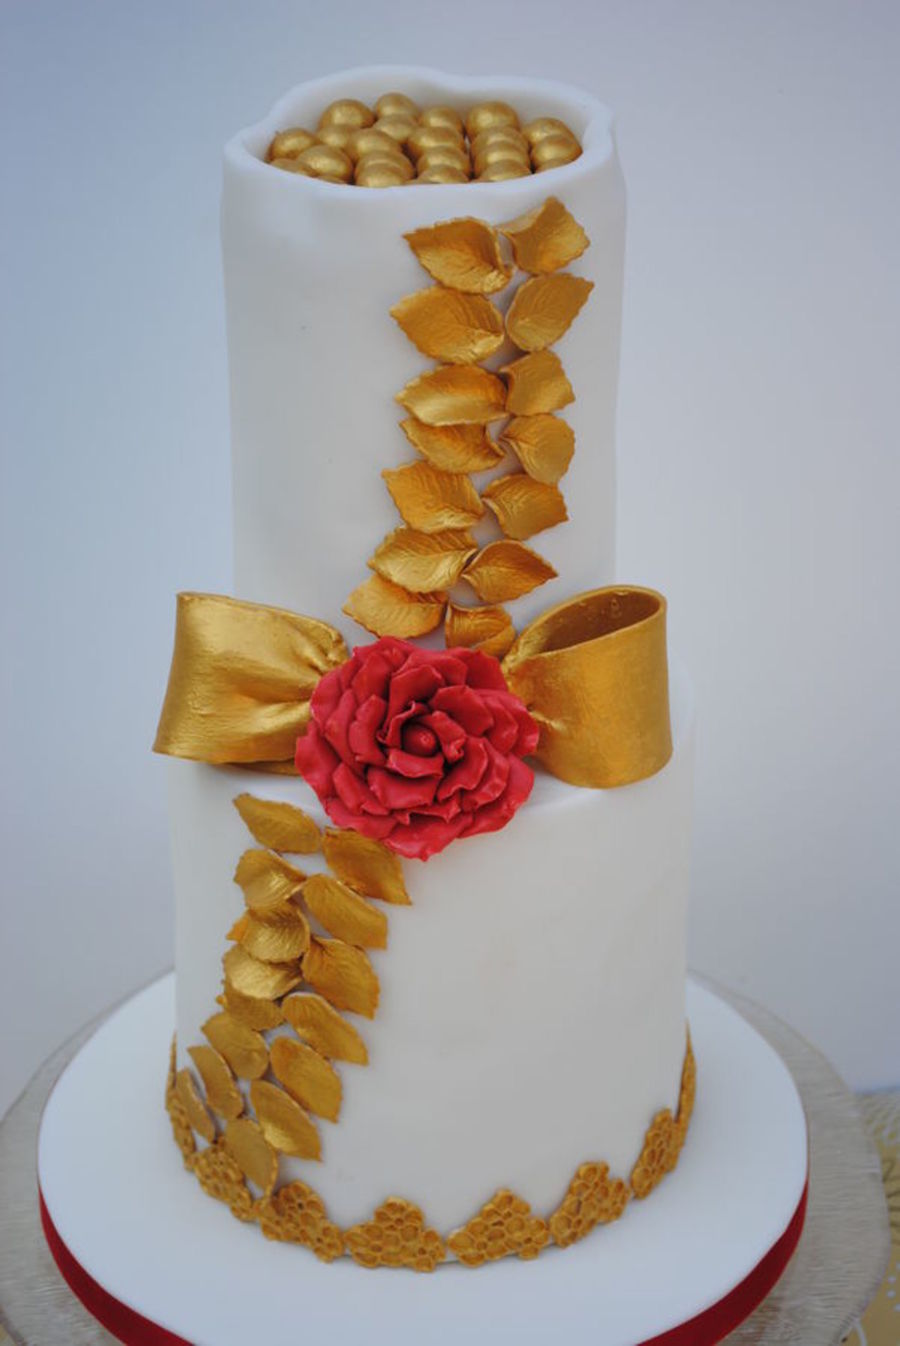 Created By Elaine Rhule on Cake Central